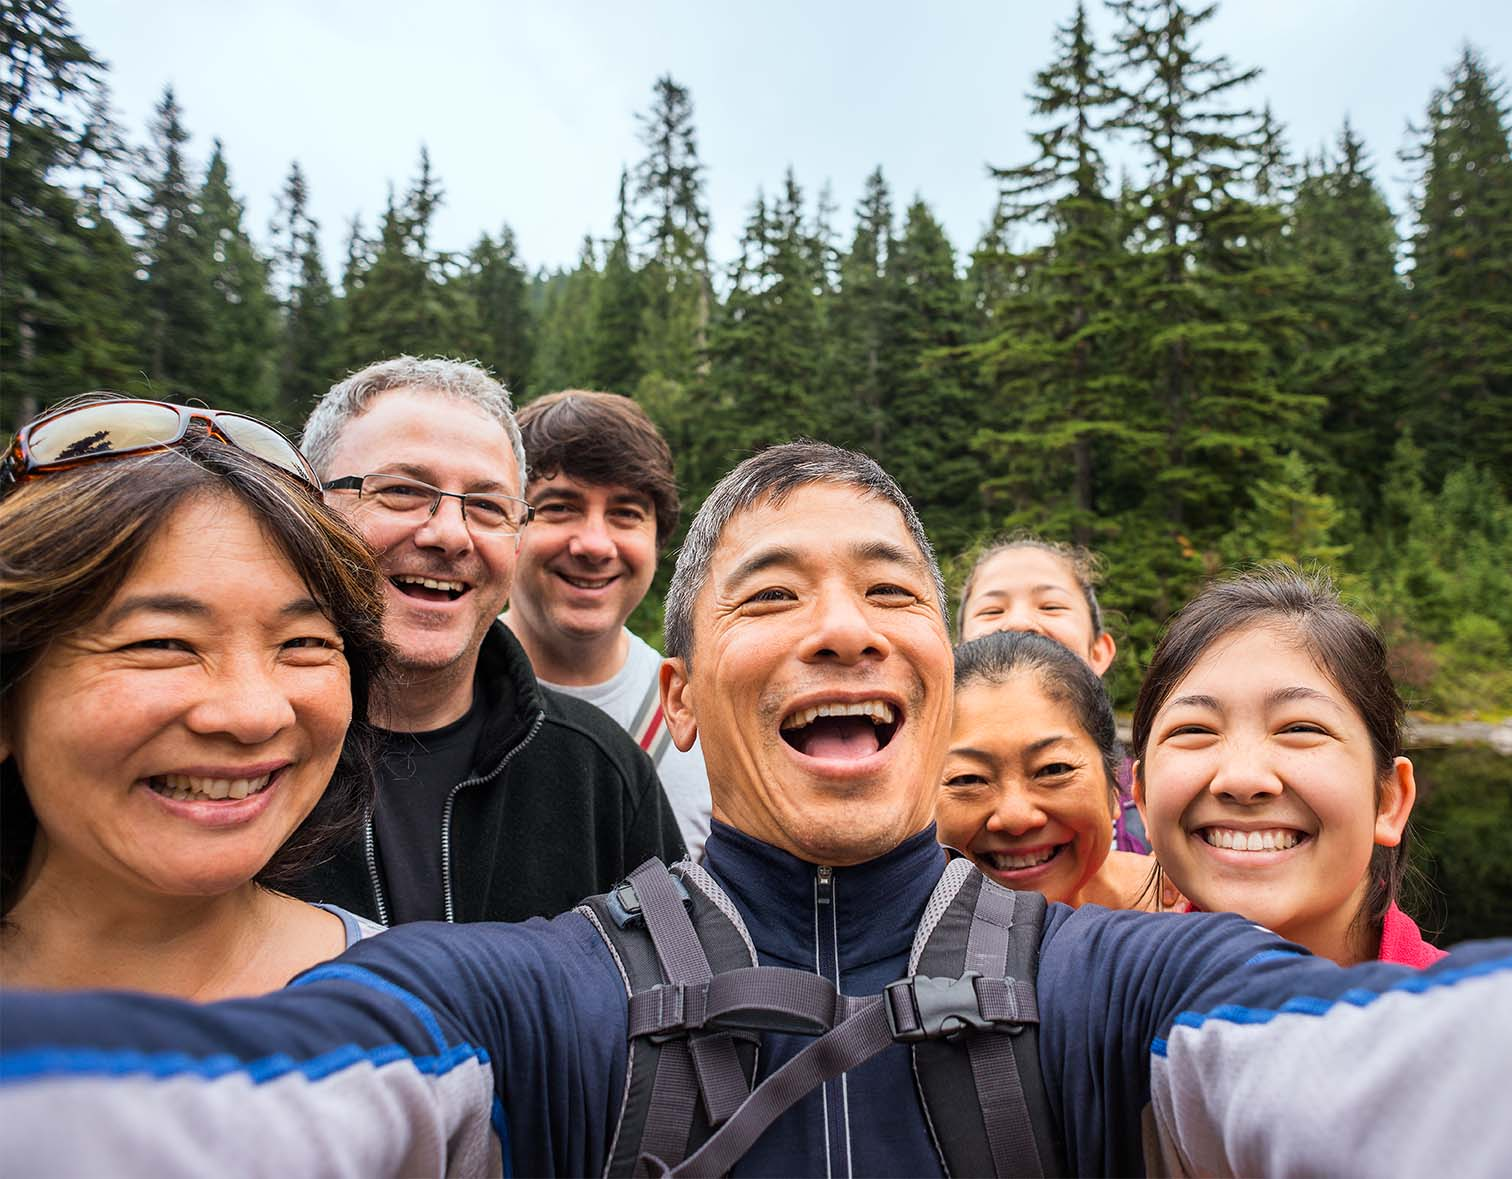 A group of related backpackers smile look at a mobile phone while taking a selfie near a lake in a wilderness park.  The group is a real multi-ethnic and multi-generation extended family of mature adults and teenage children.  Wide angle view of the forest and pond in the background.  Mount Seymour Provincial Park, North Vancouver, British Columbia, Canada.